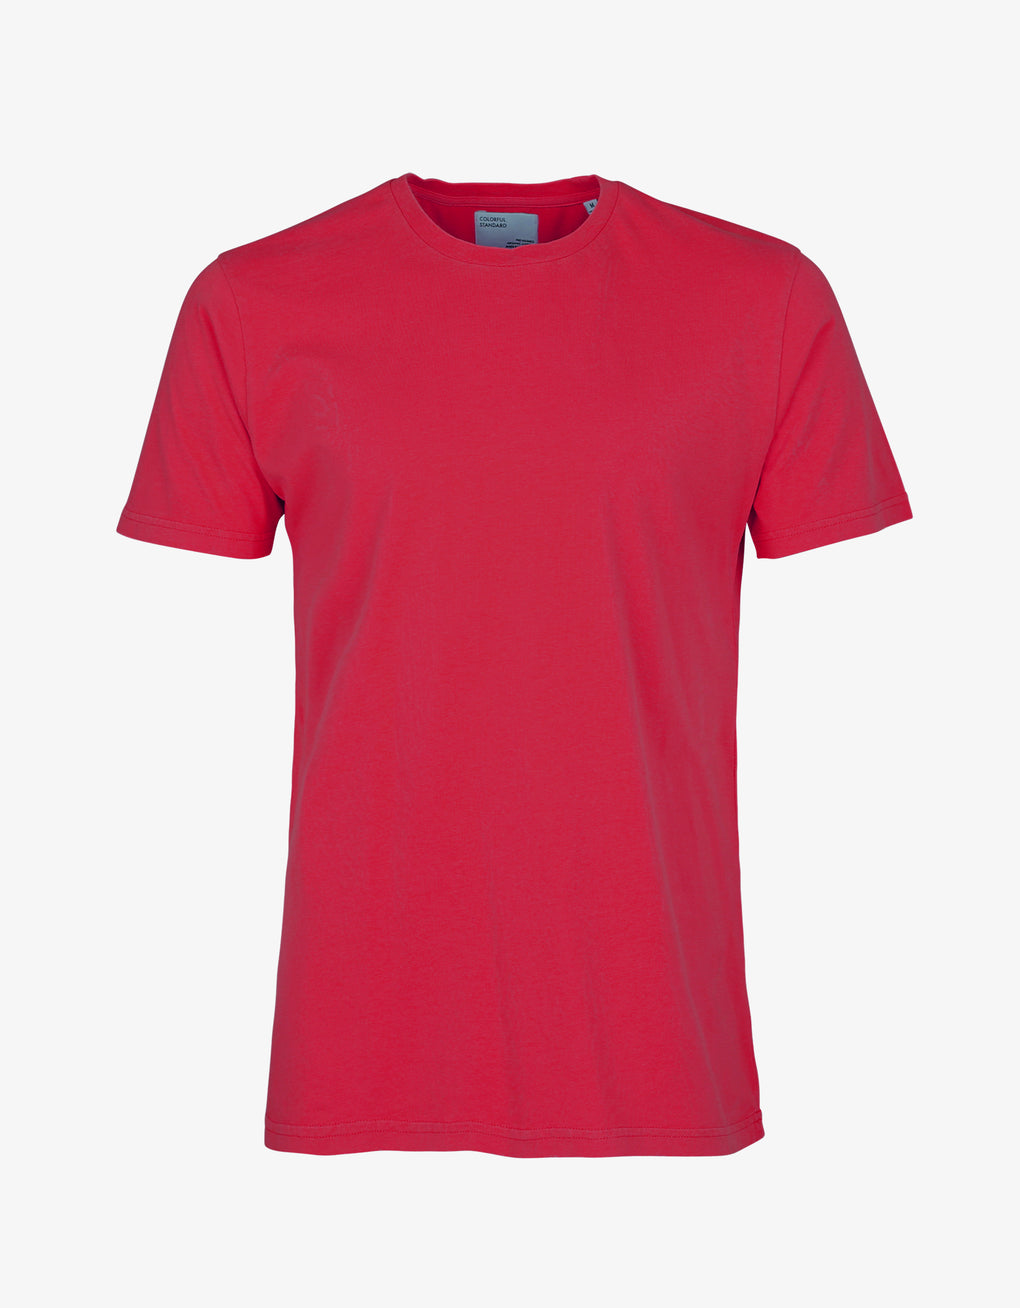 Colorful Standard Classic Organic Tee T-shirt Scarlet Red